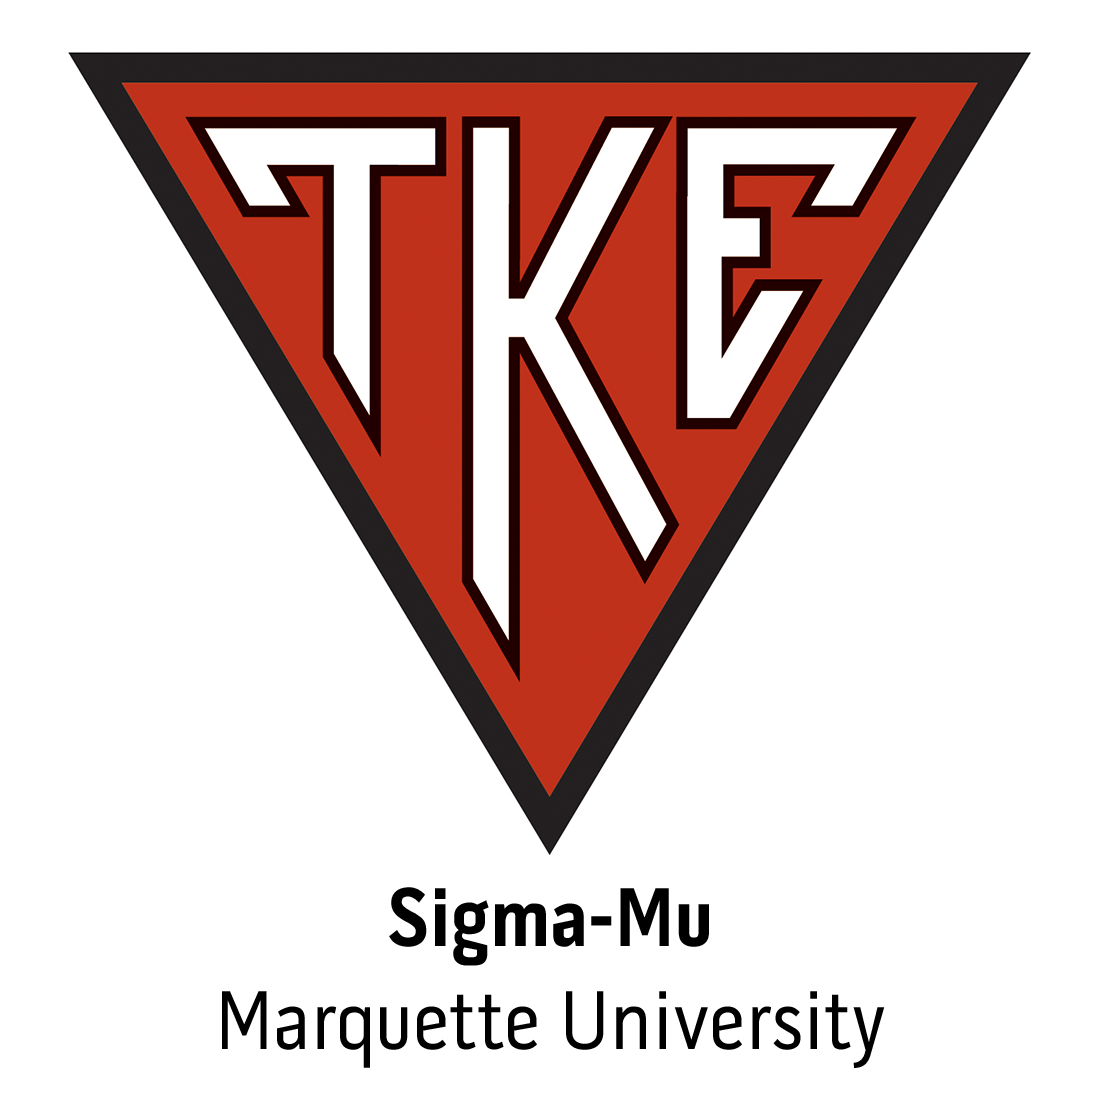 Sigma-Mu Chapter at Marquette University